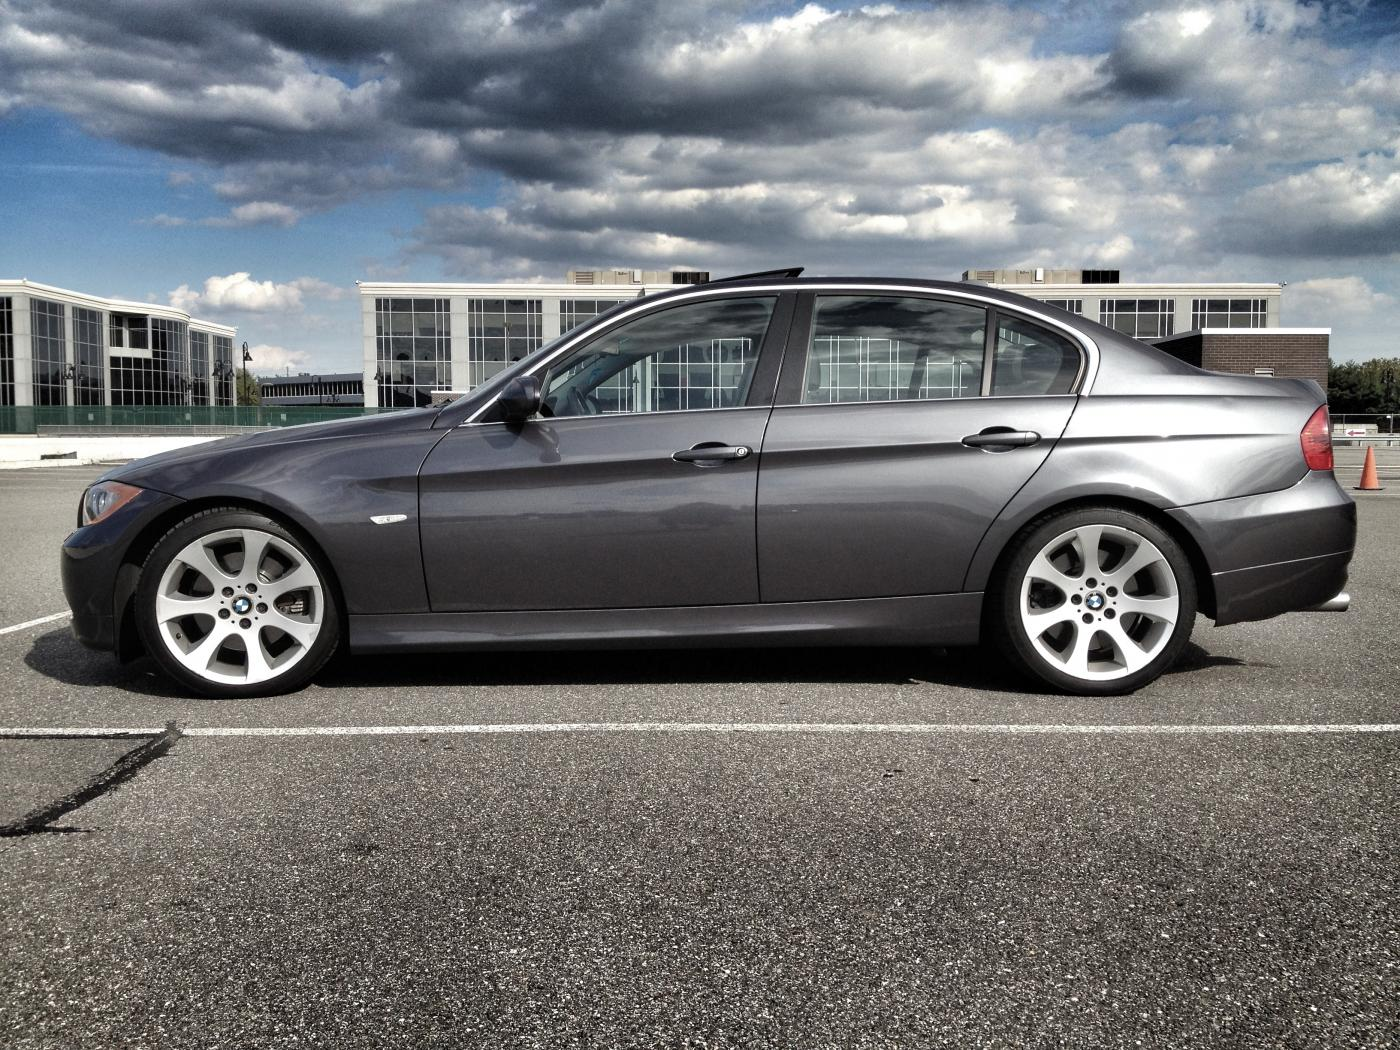 2006 BMW 330i up for sale....